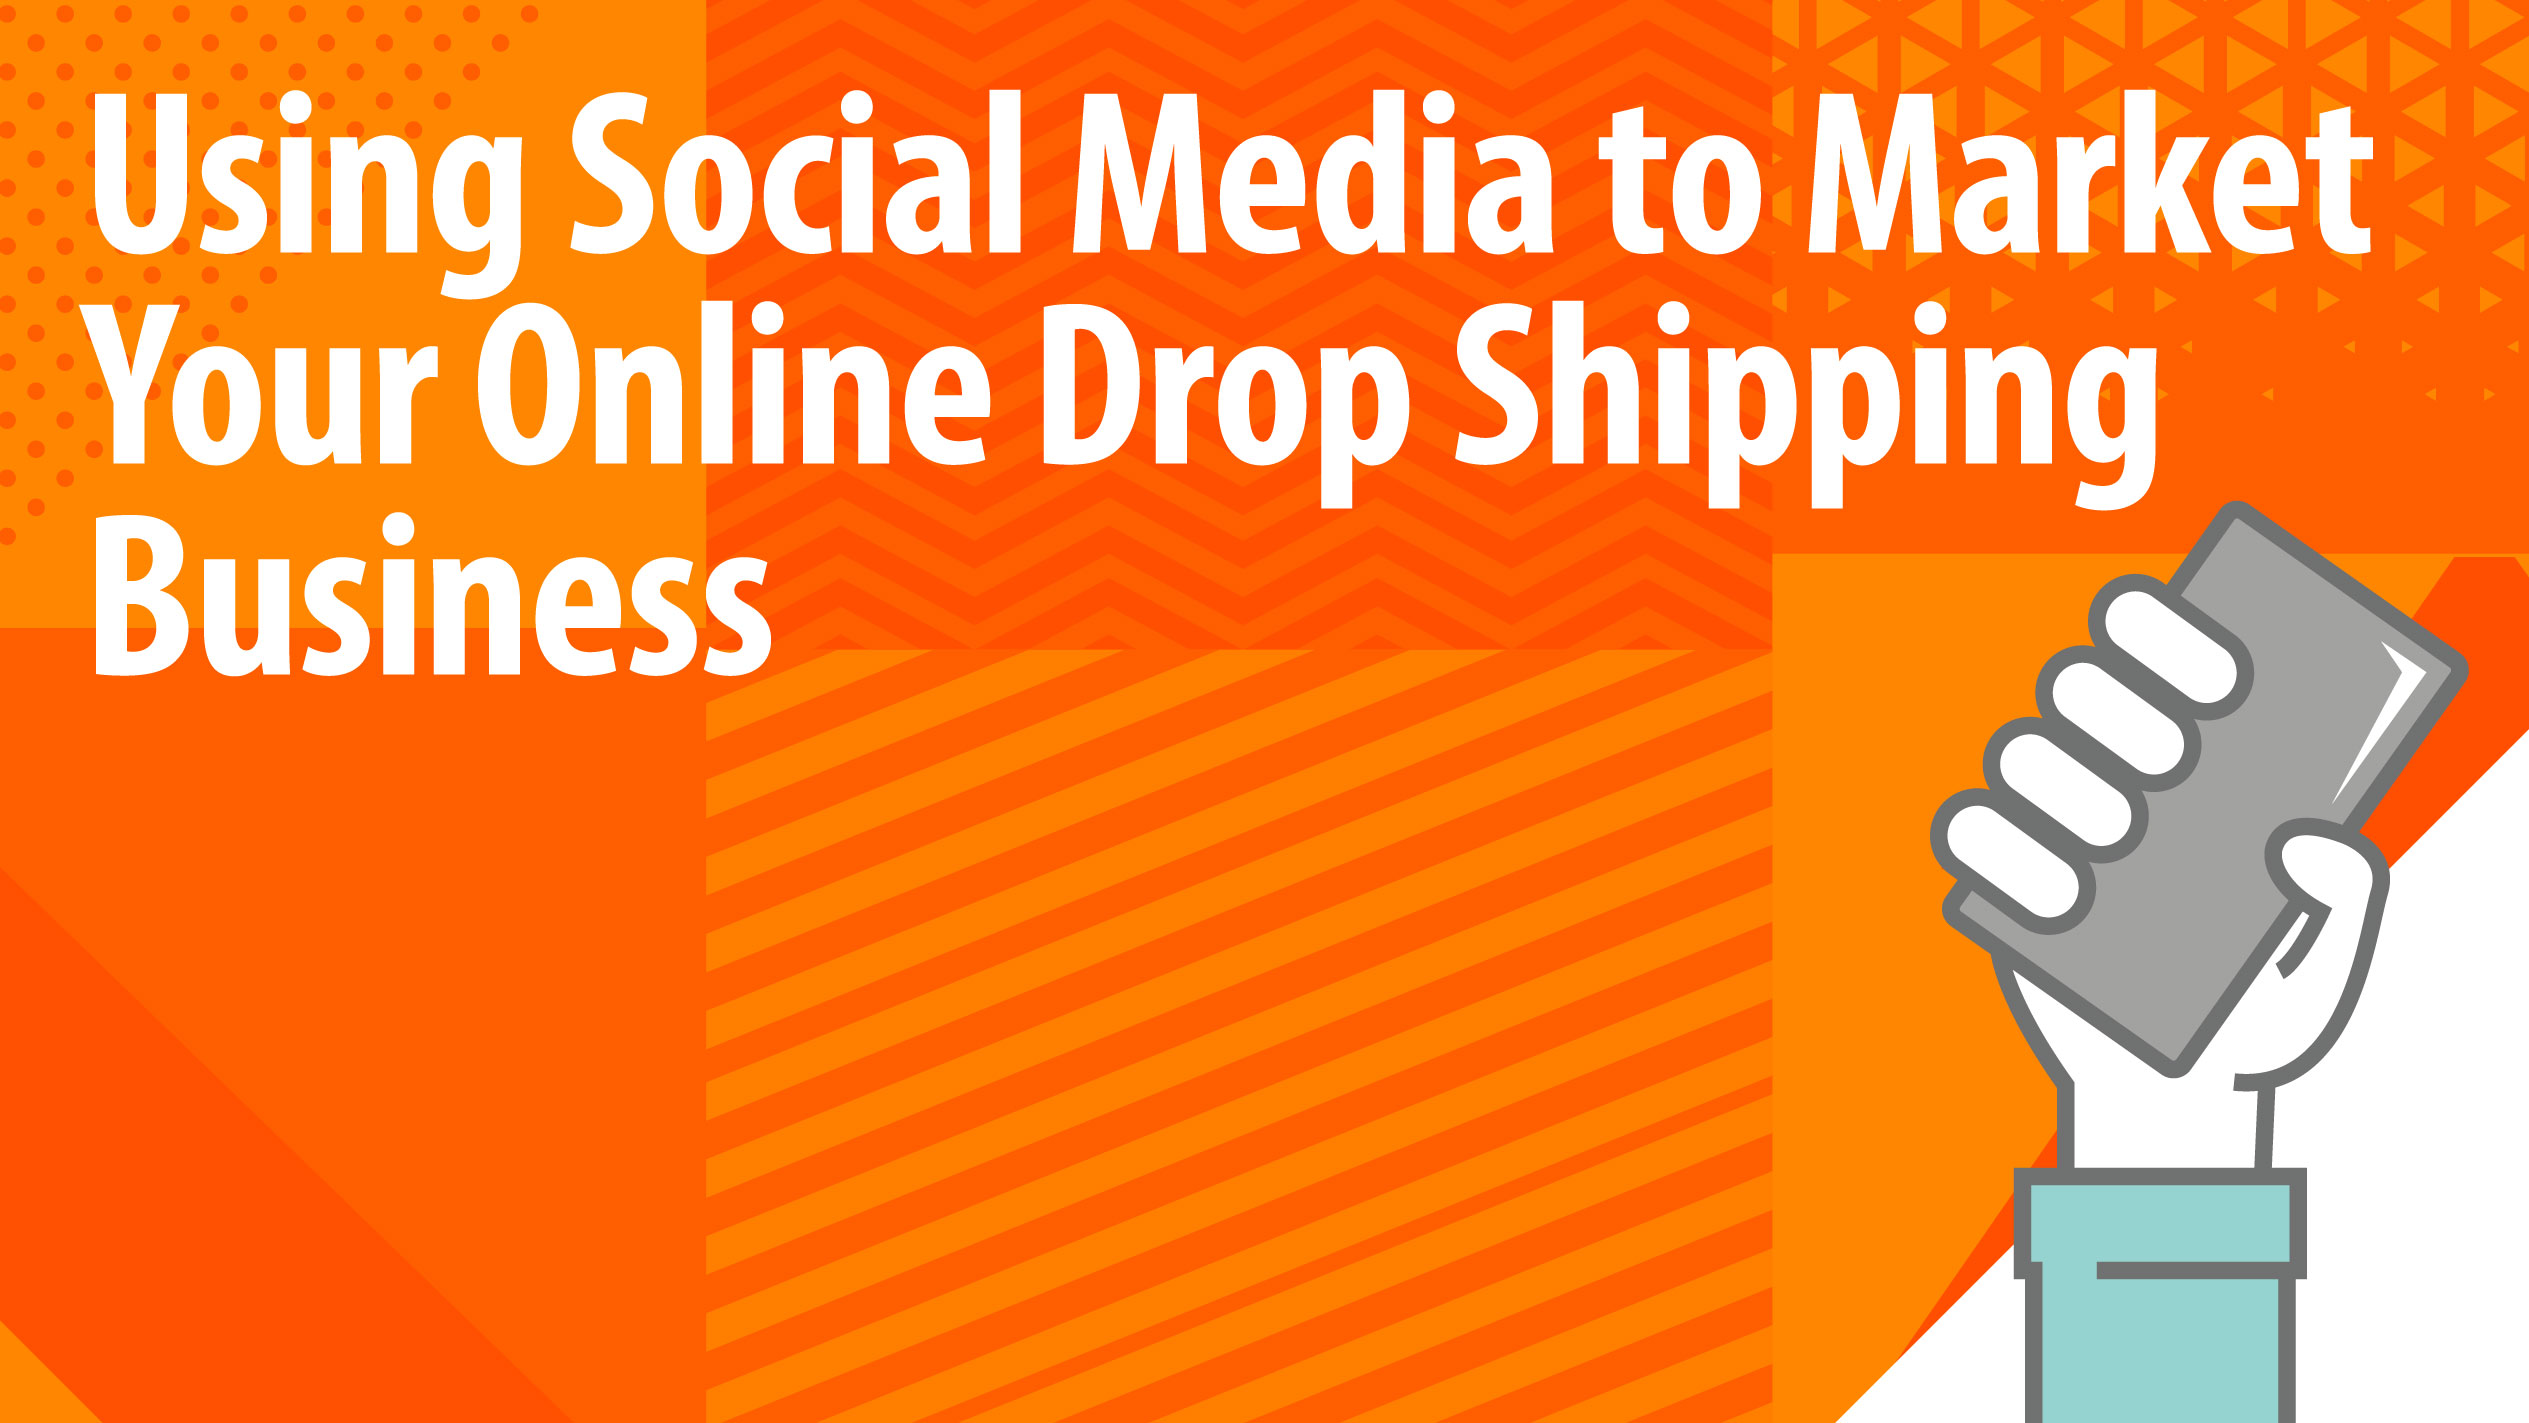 Using Social Media to Market Your Online Drop Shipping Business